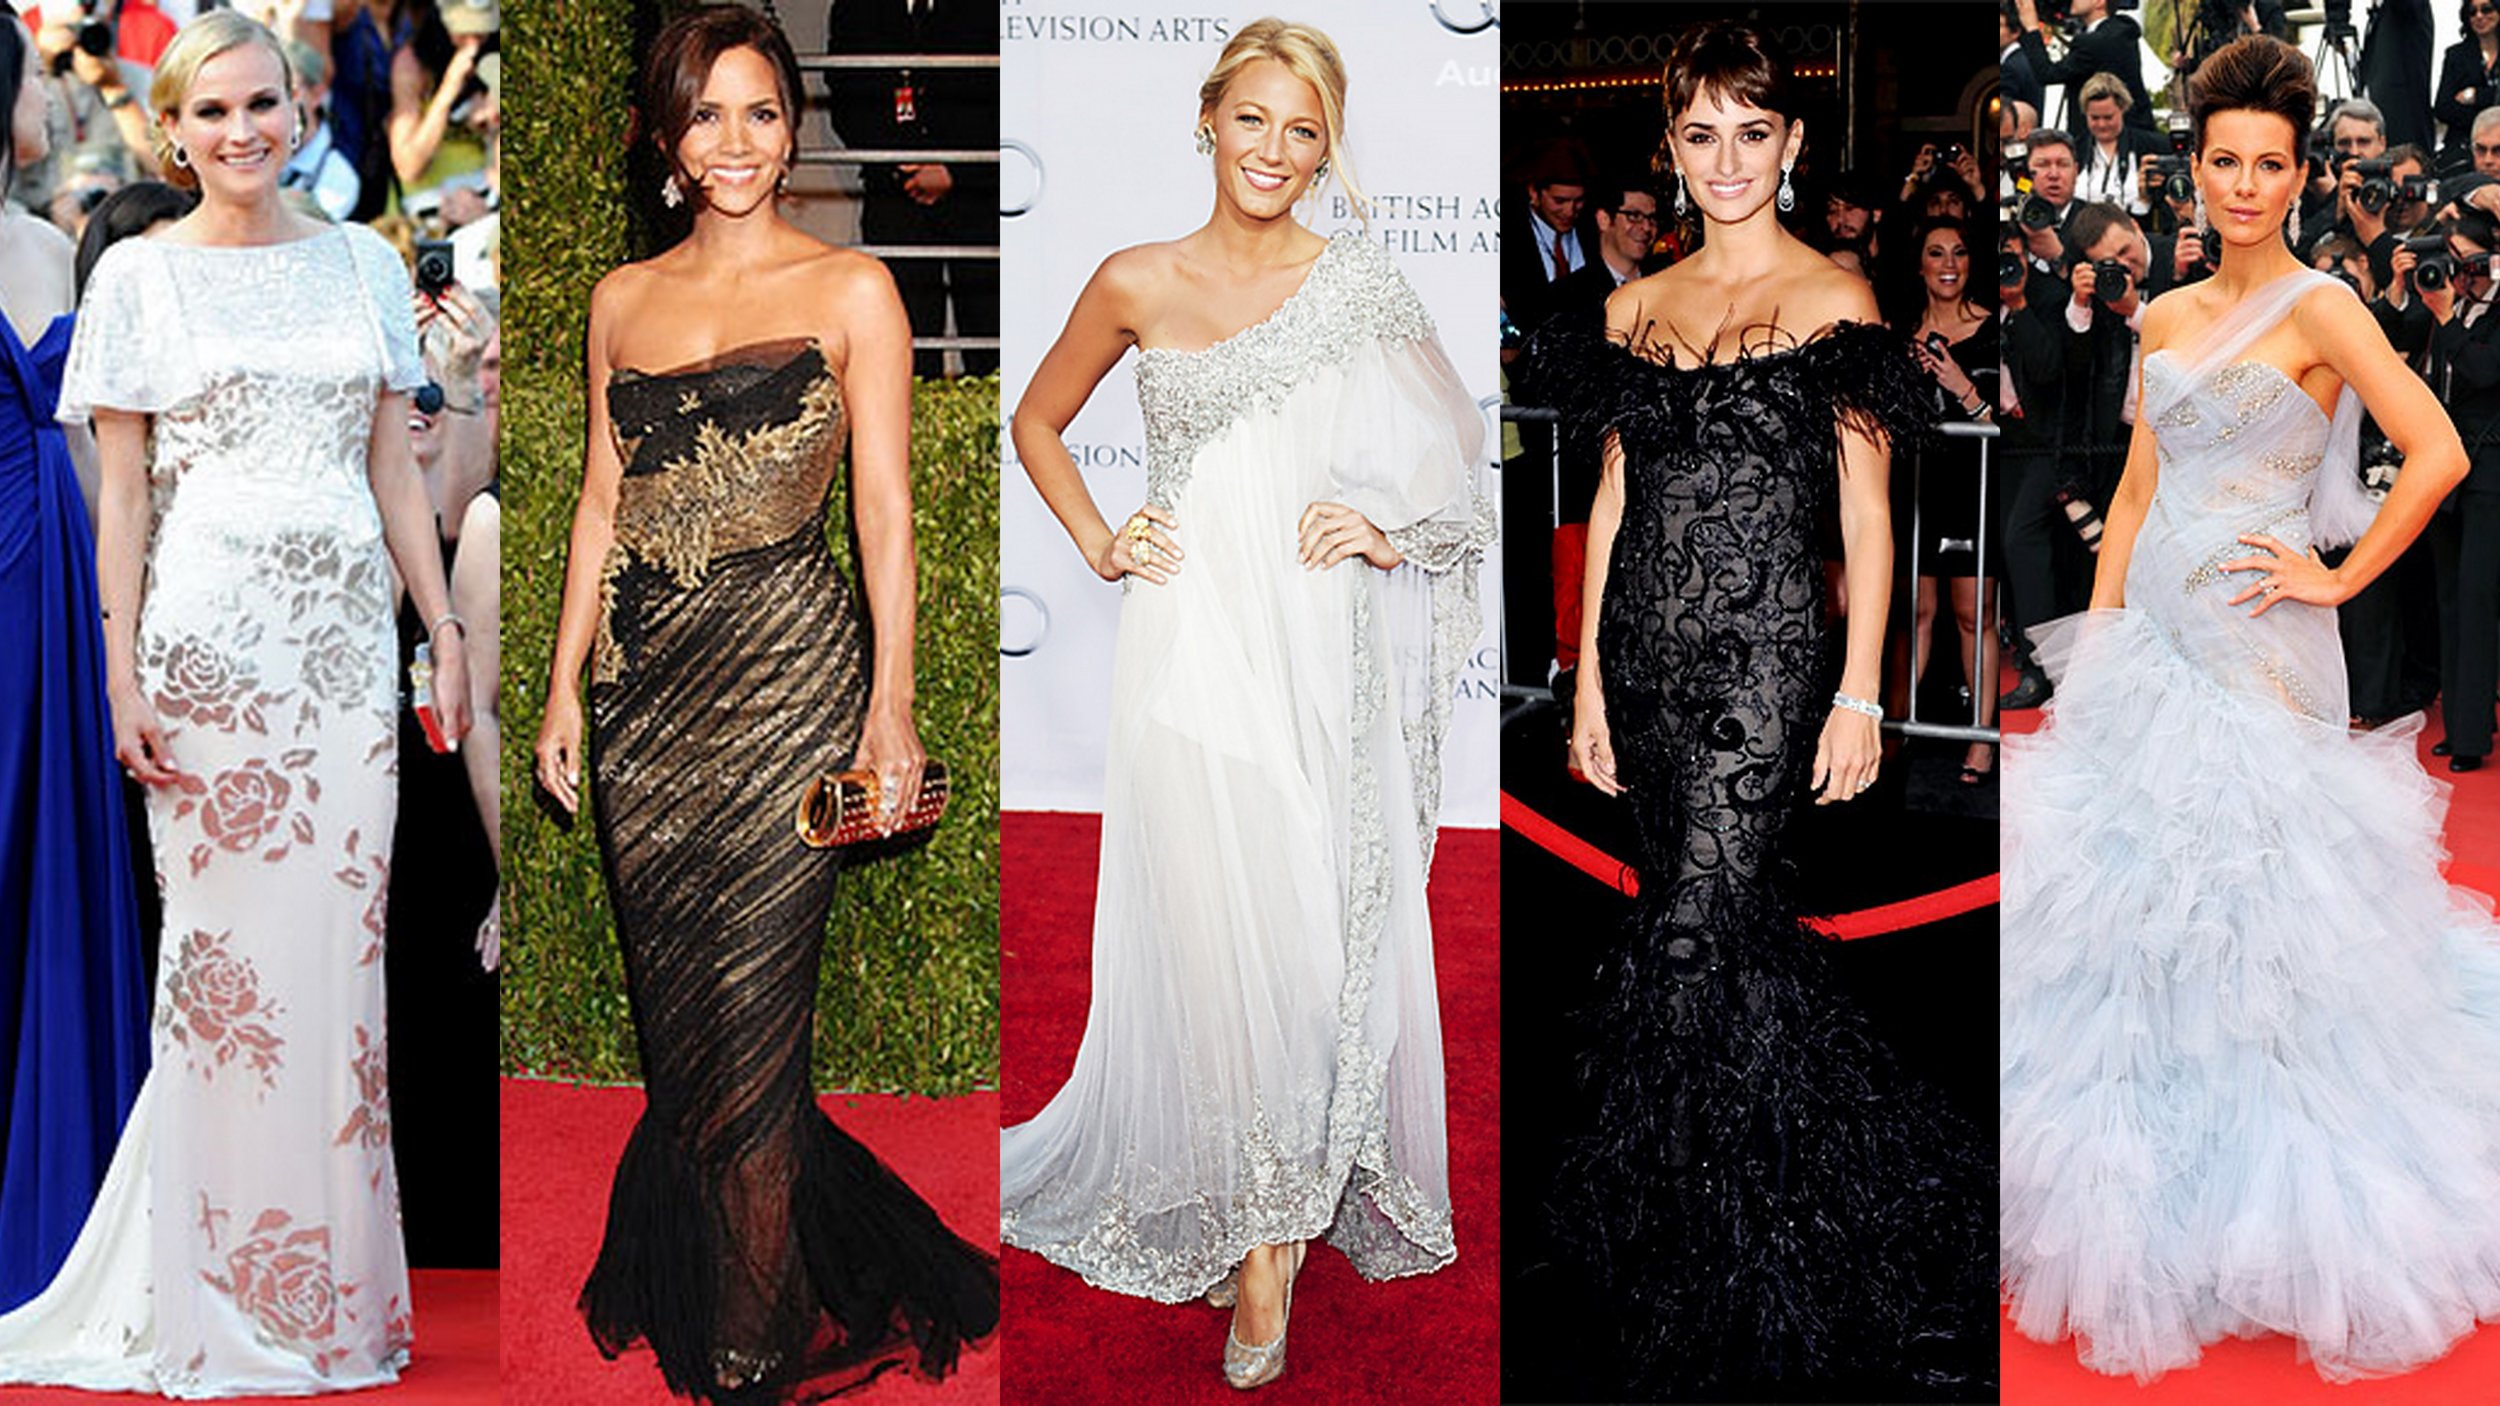 From left to right: Diane Kruger, Halle Berry, Blake Lively, Penelope Cruz and Kate Beckinsale